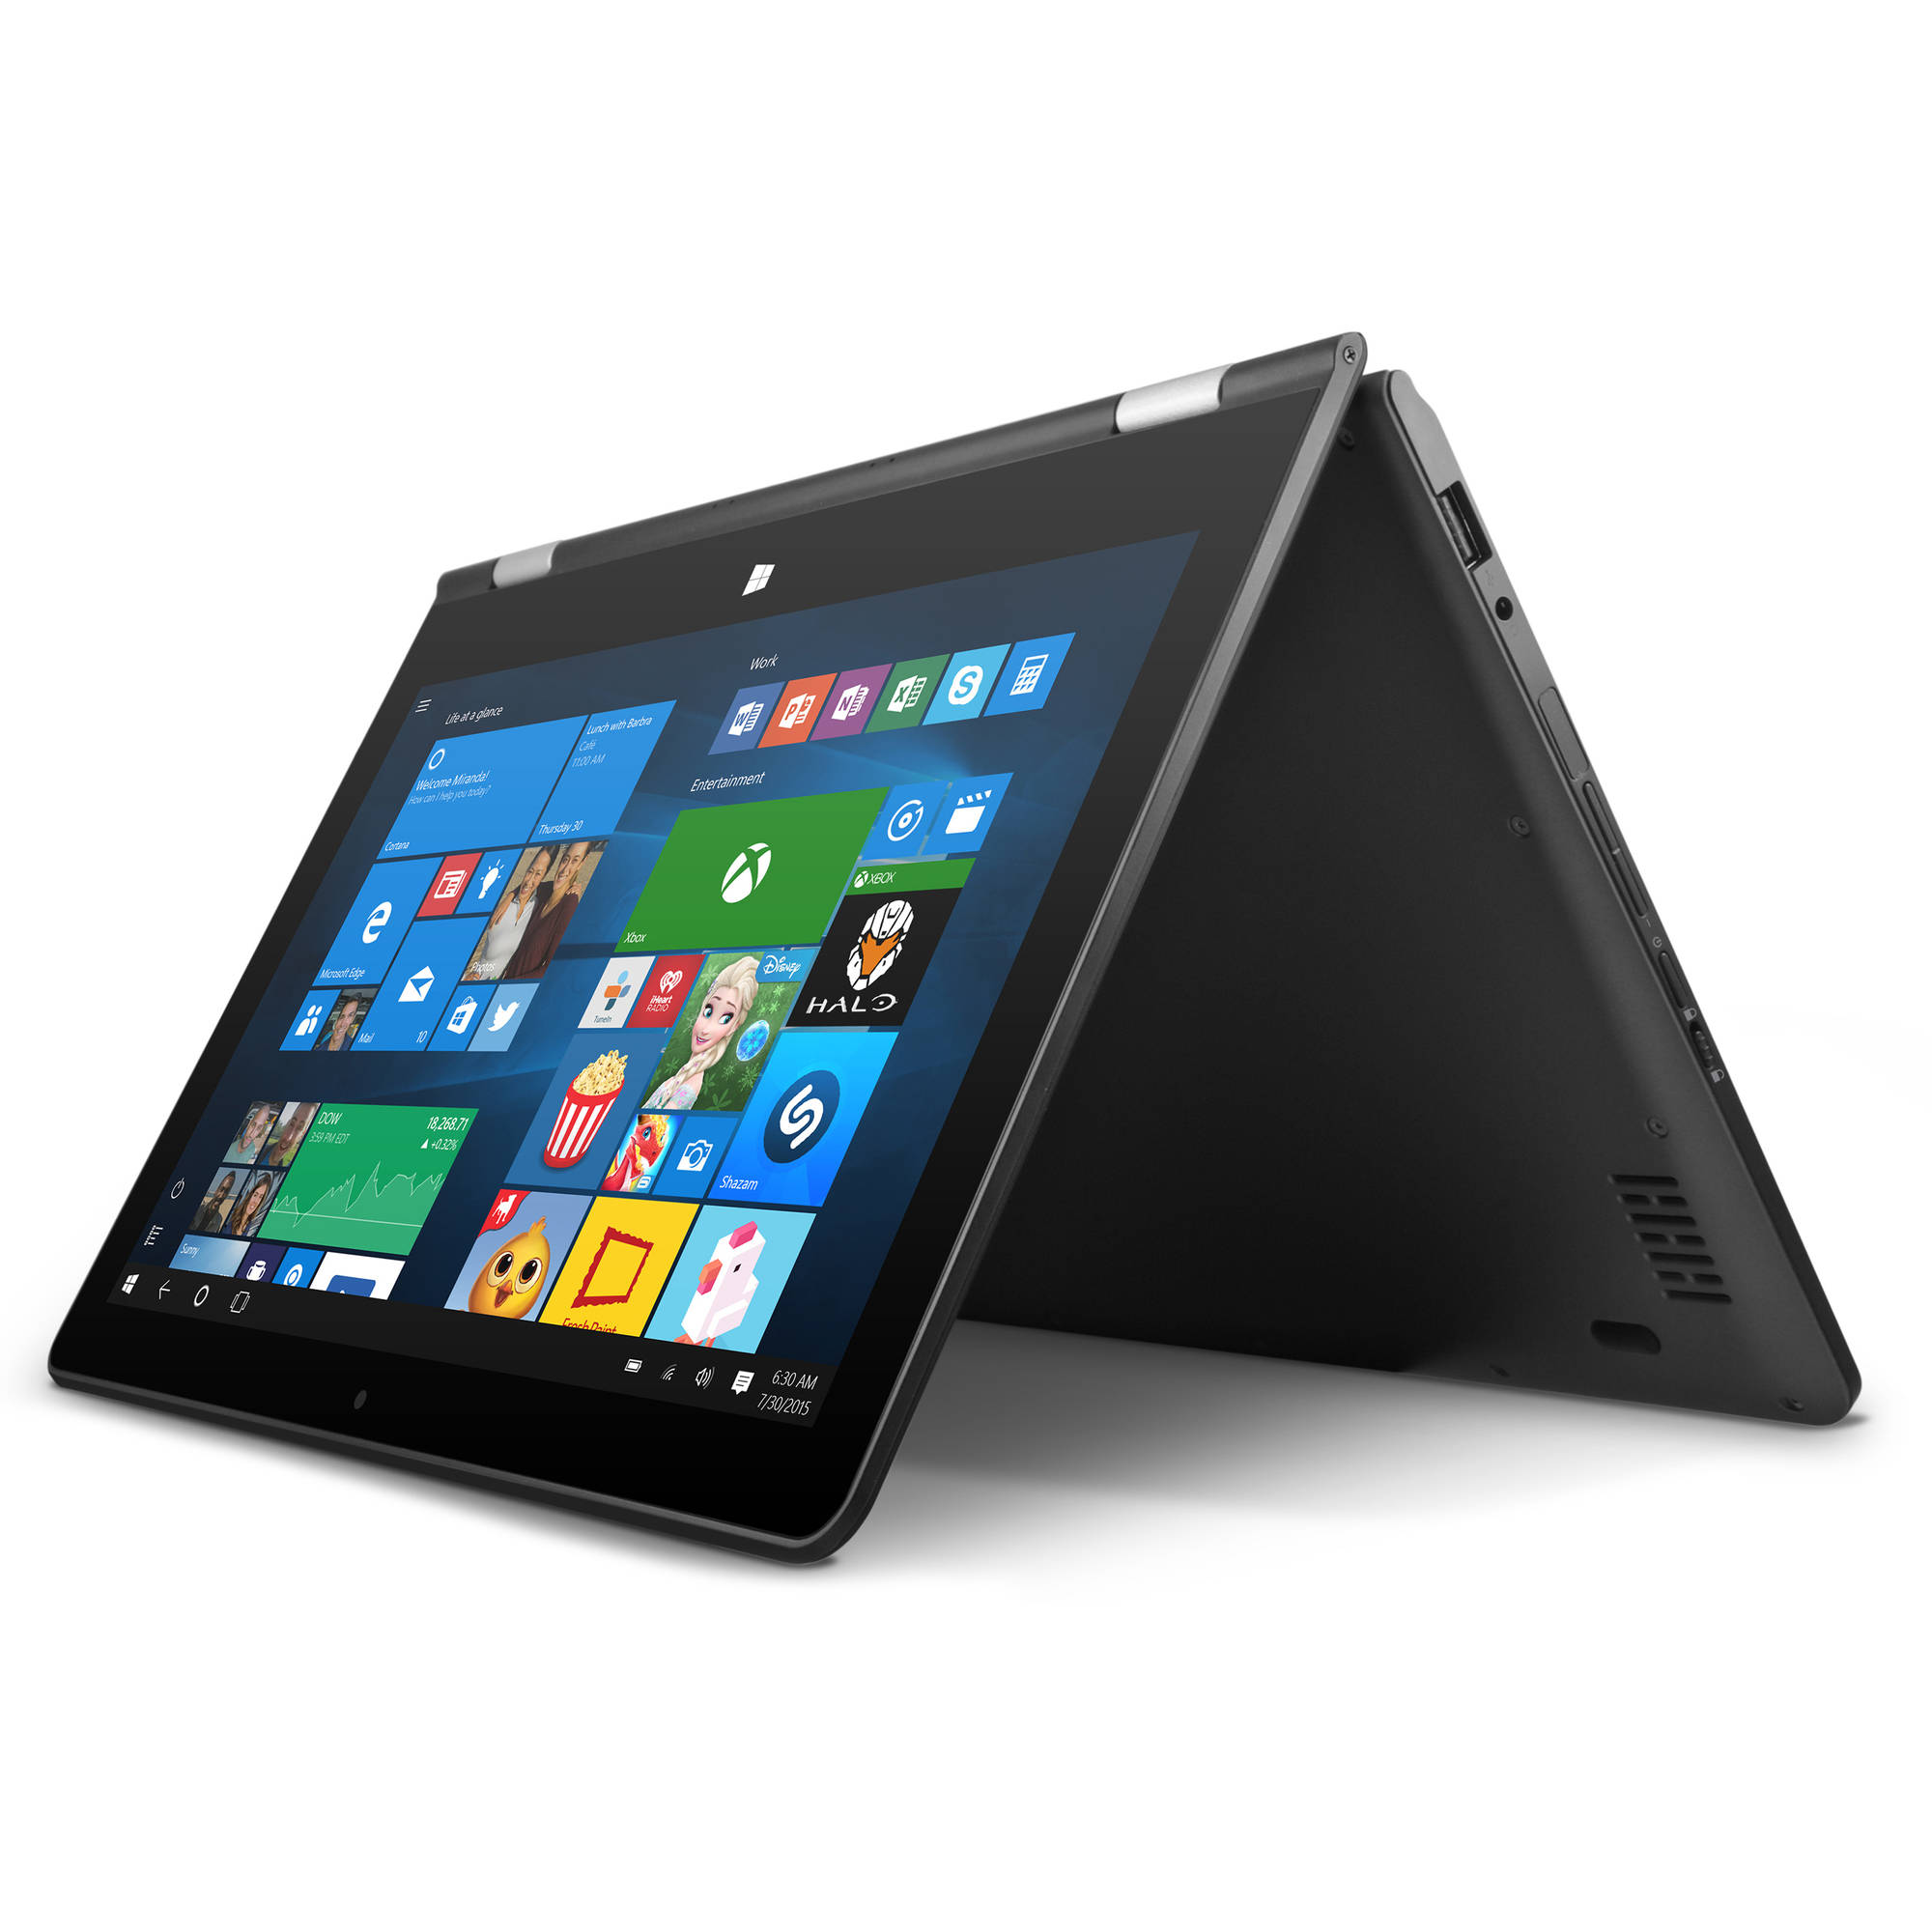 "Ematic 11.6"" Laptop, Touchscreen, 2-in-1, Windows 10, Intel Atom Quad-Core Processor, 2GB RAM, 32GB Flash Storage"